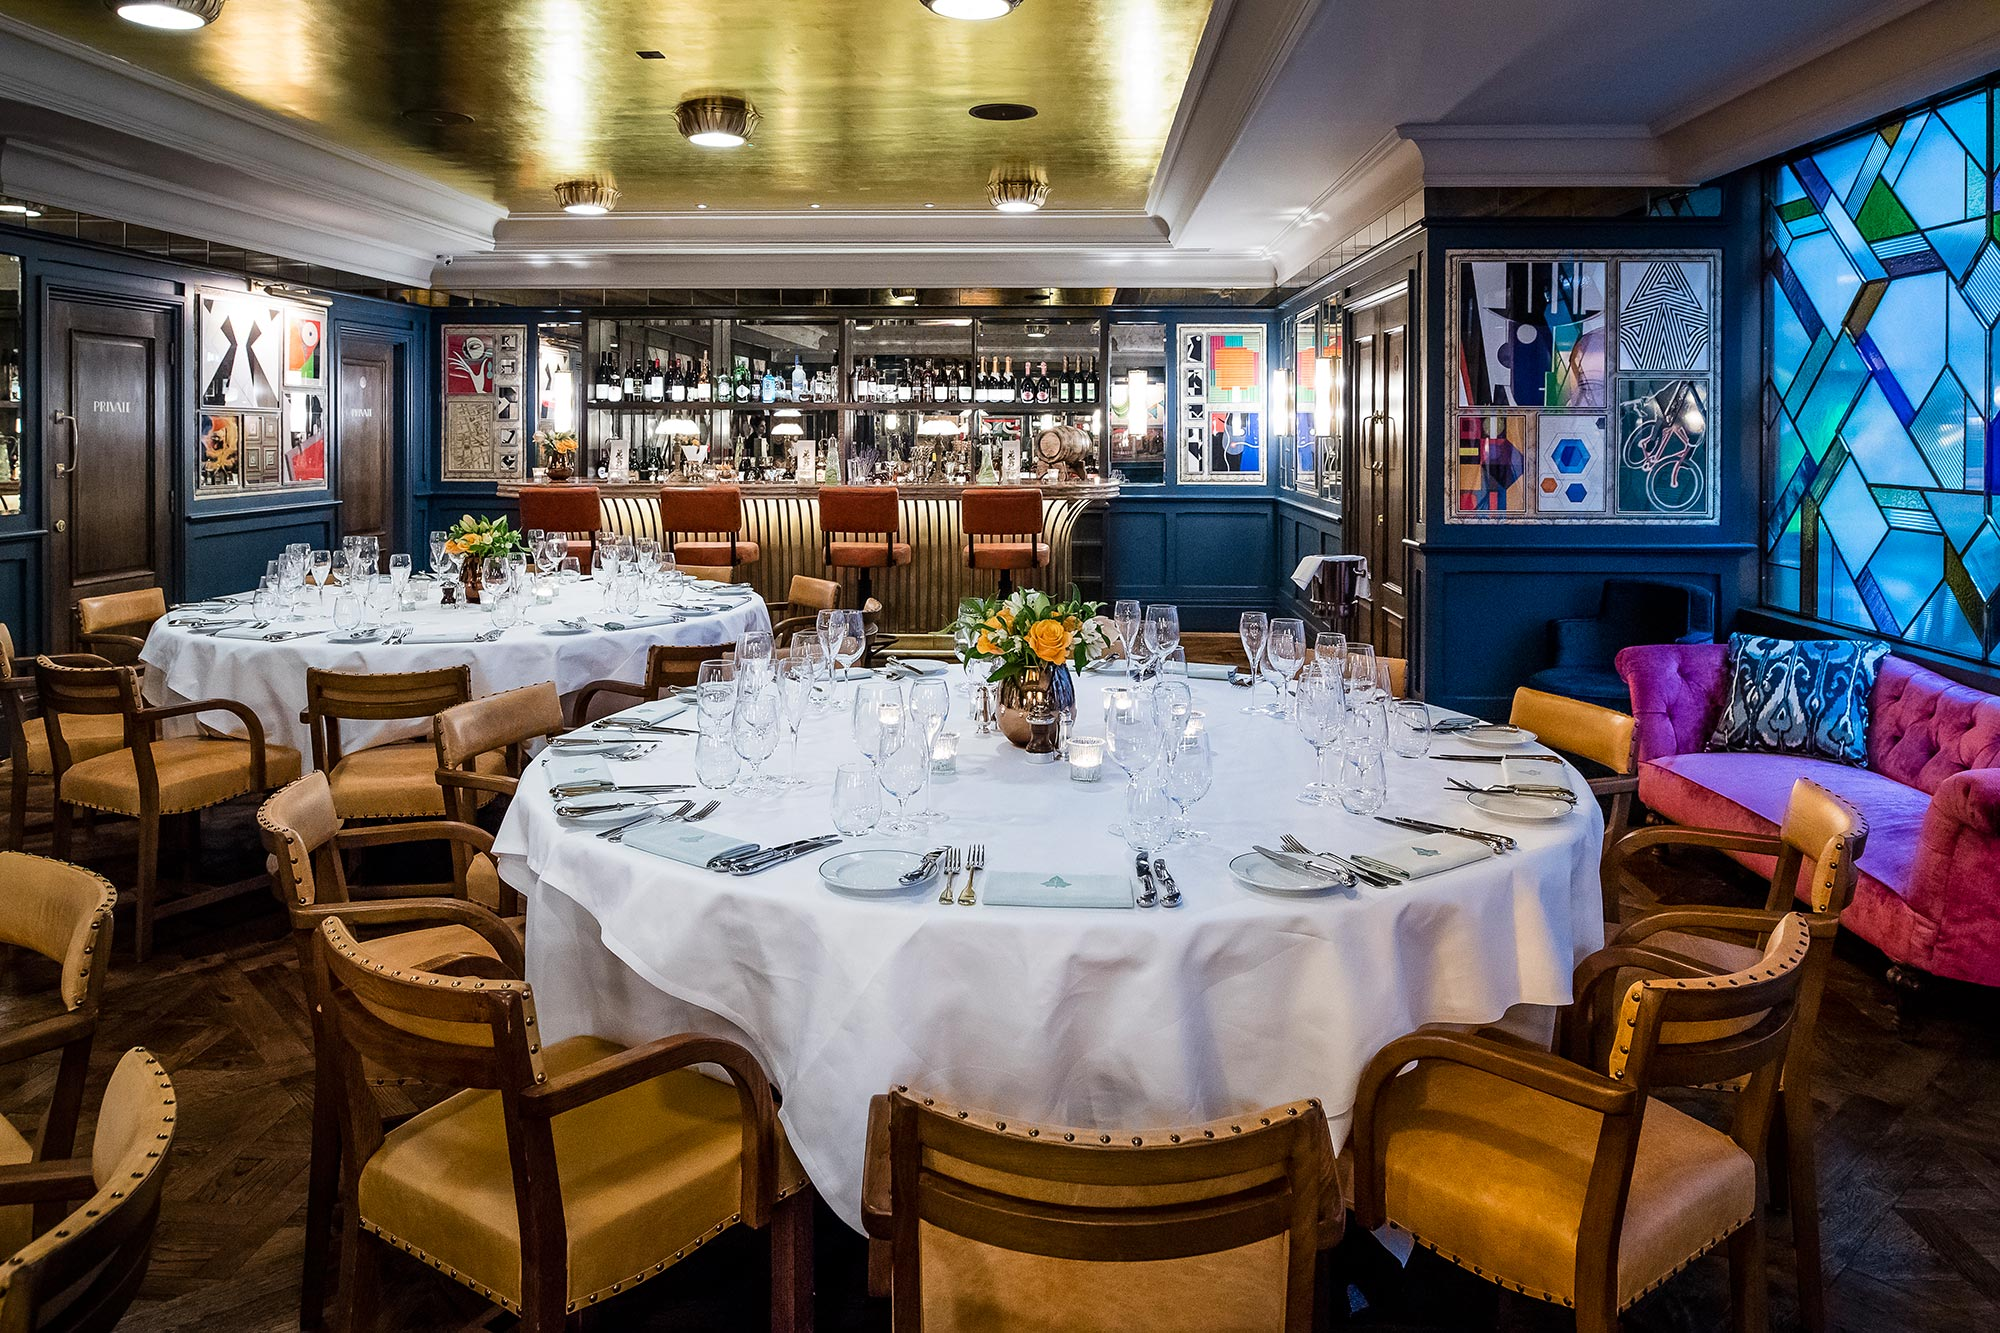 Private Dining Room - The Ivy Soho Brasserie, London - The Ivy Soho Brasserie